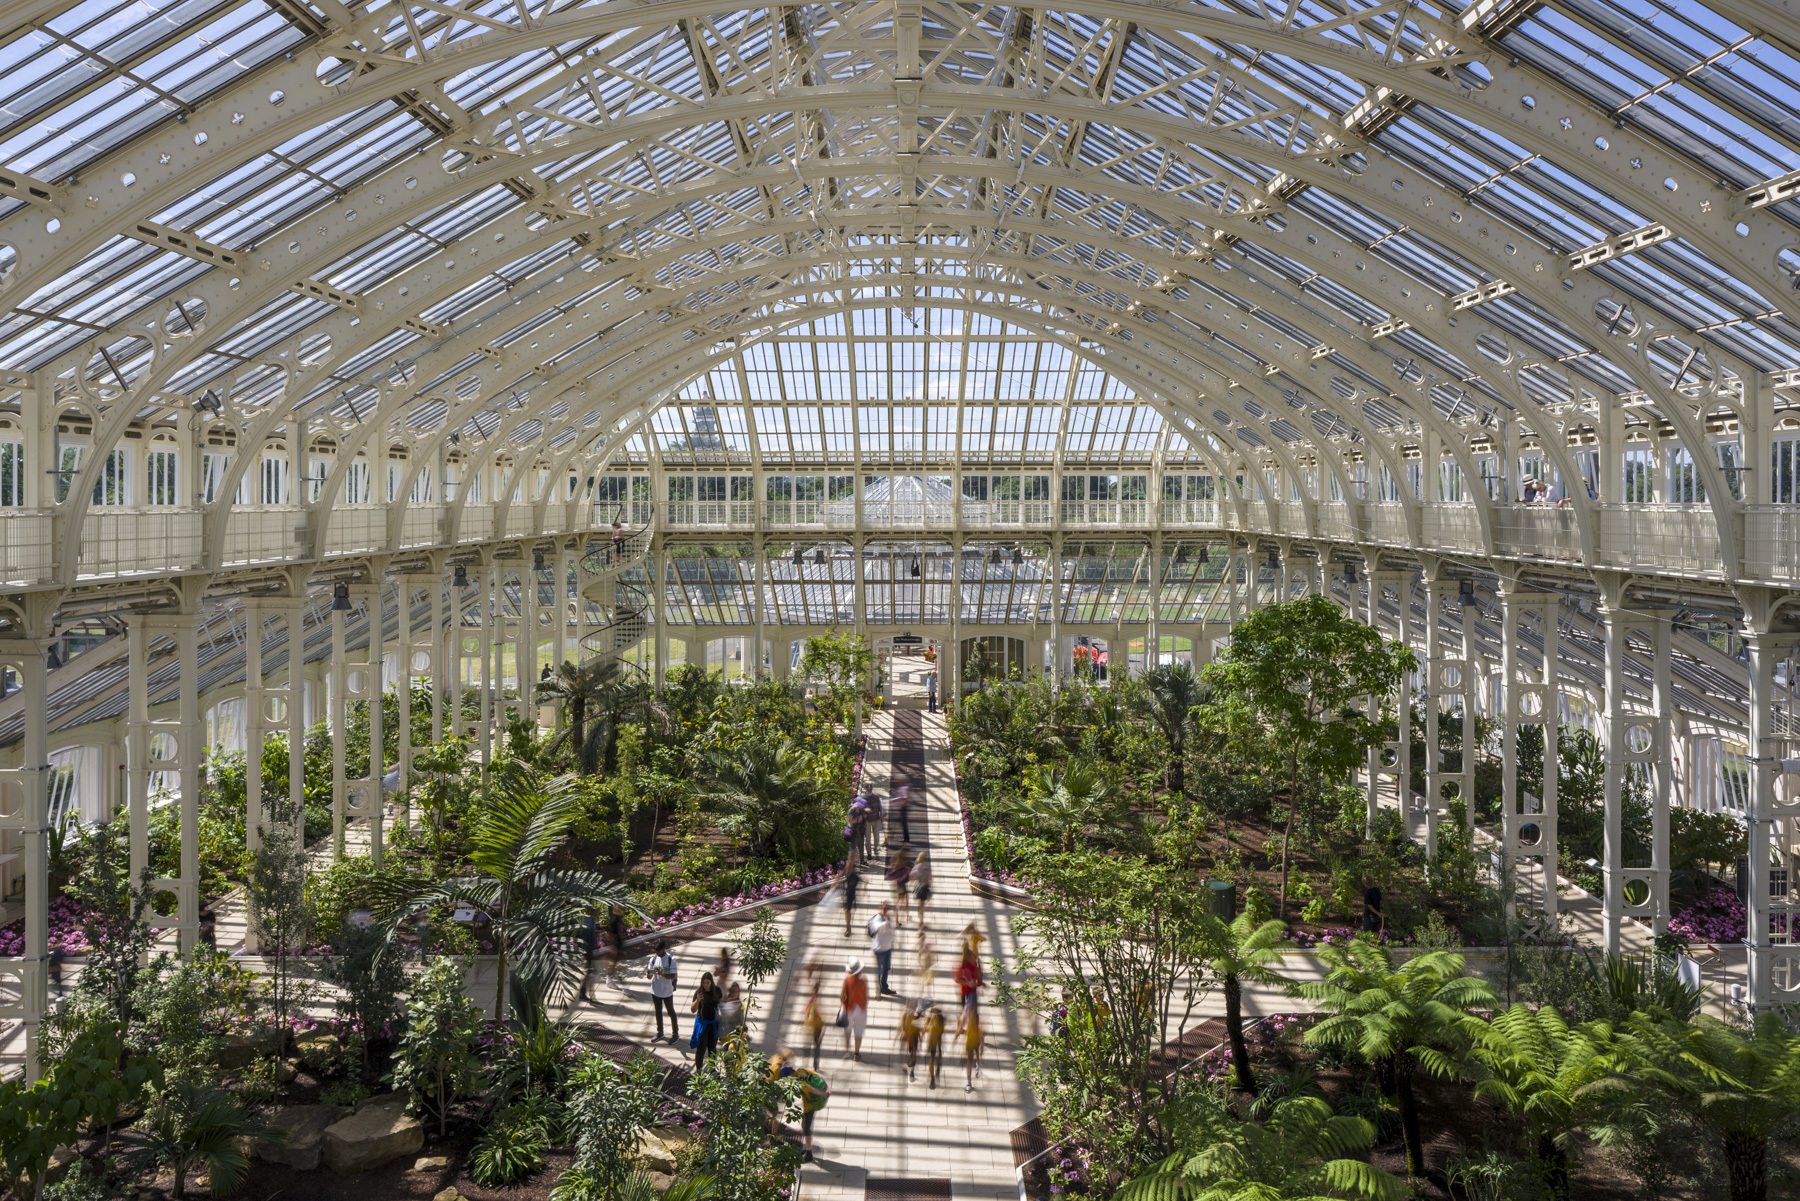 The Temperate House at Kew (Gareth Gardner/RBG Kew/PA)